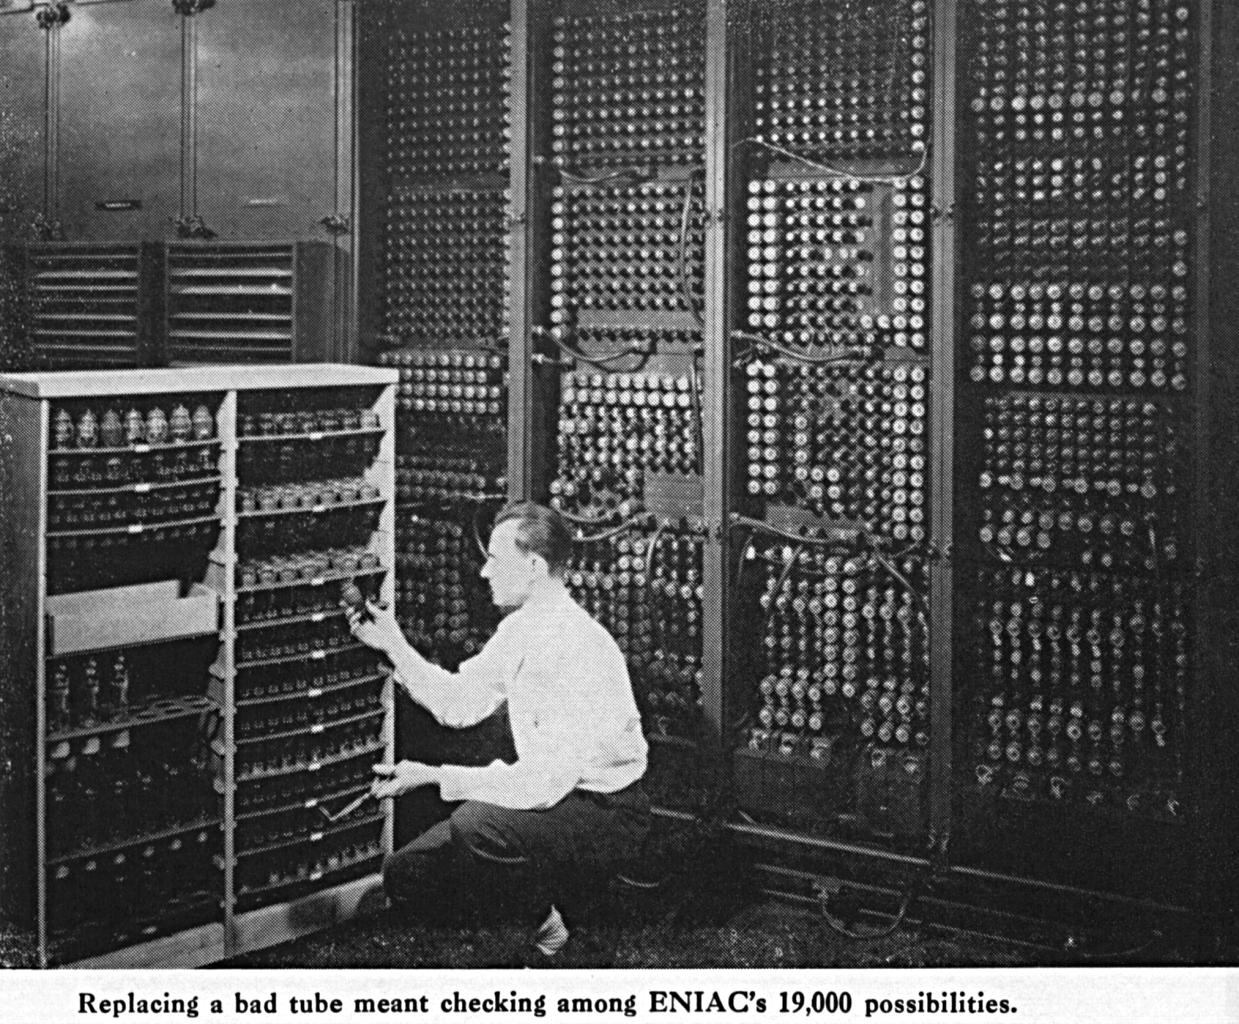 http://upload.wikimedia.org/wikipedia/commons/e/e5/ENIAC-changing_a_tube.jpg